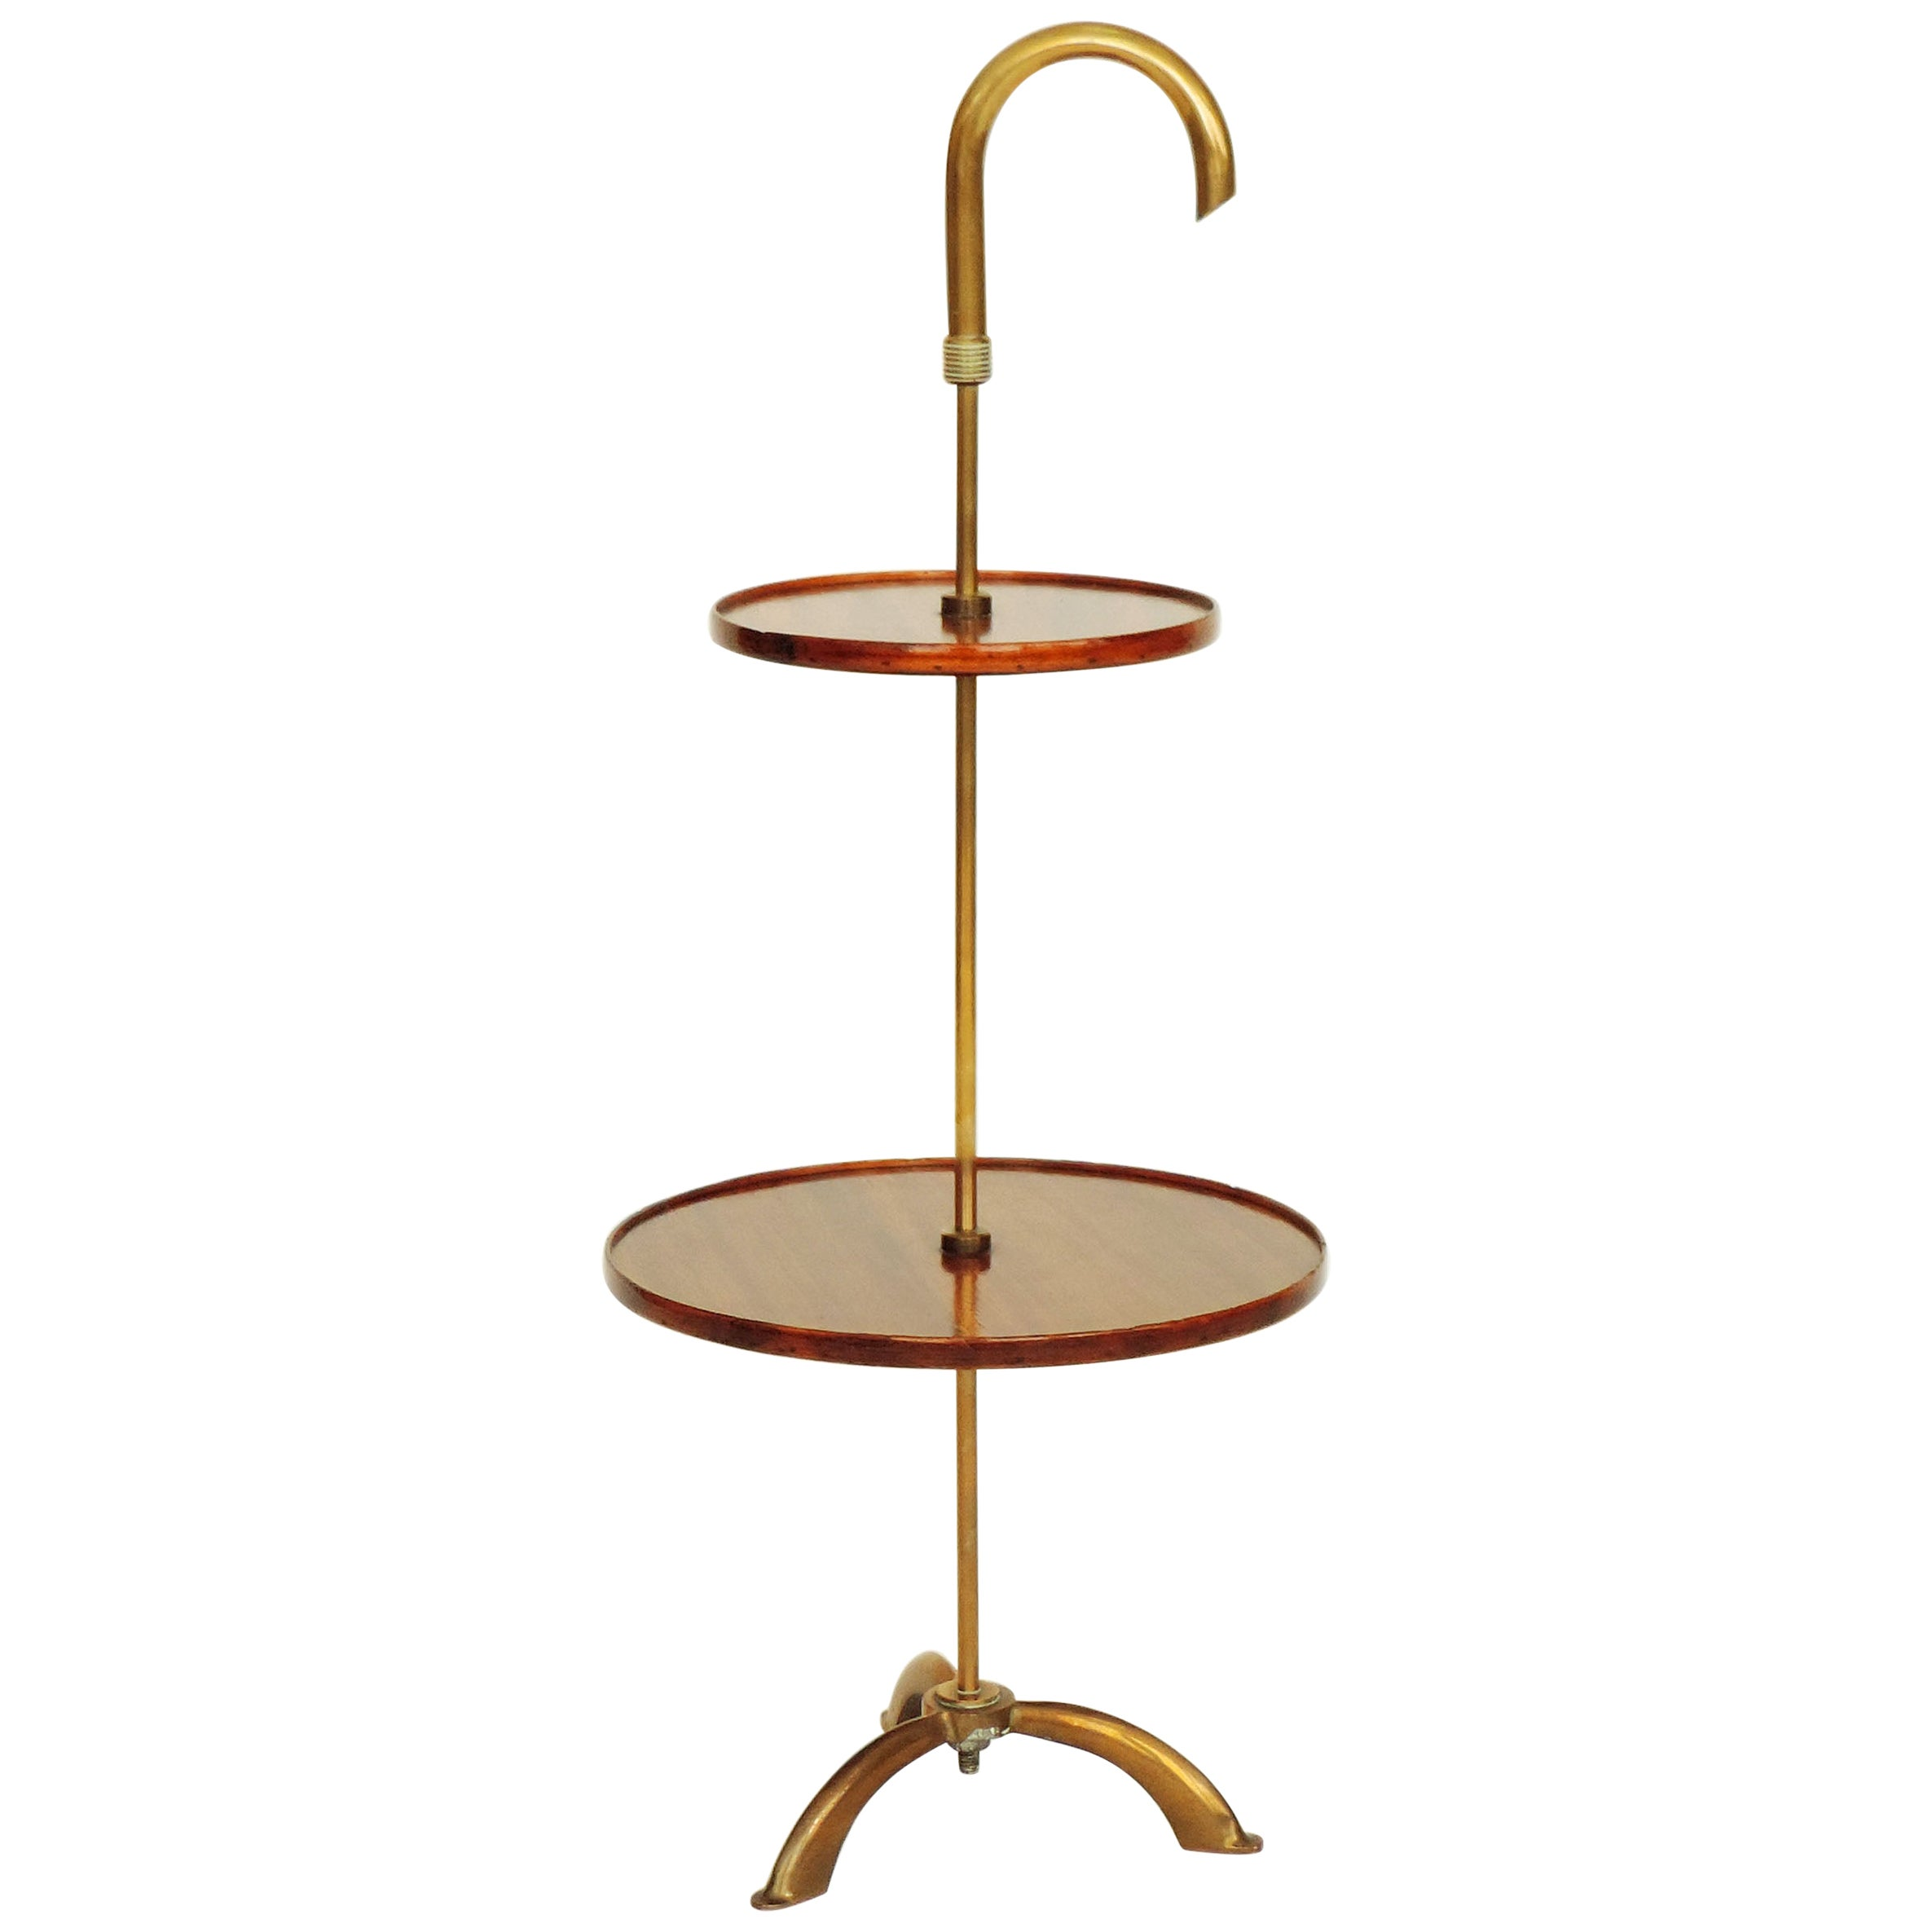 Italian Wood and Brass Midcentury Side Table, 1950s